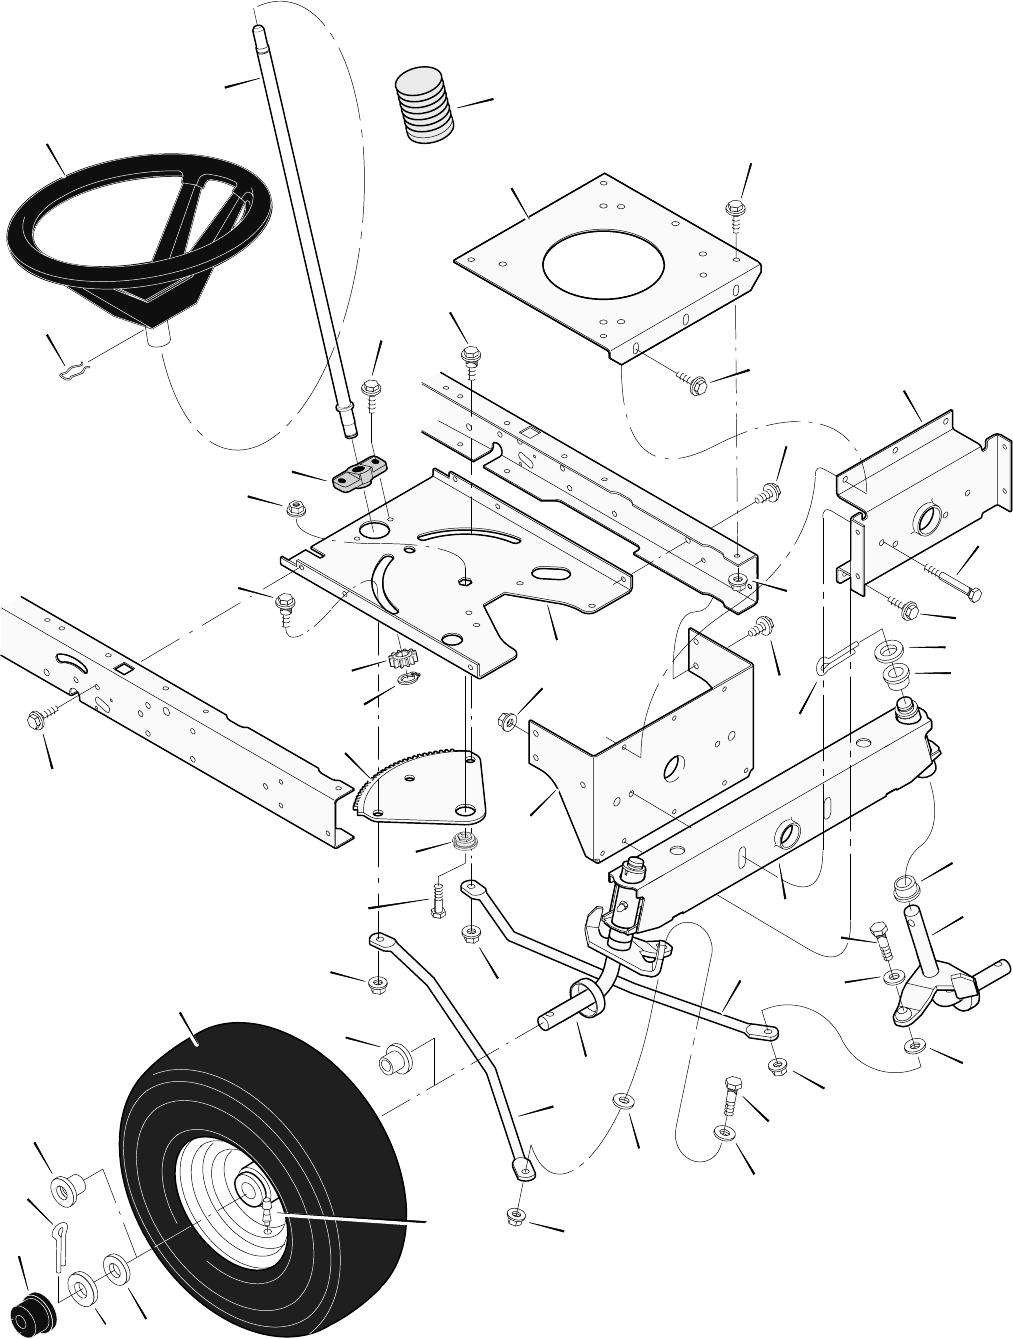 Murray Riding Mower Replacement Parts : Page of murray lawn mower b user guide